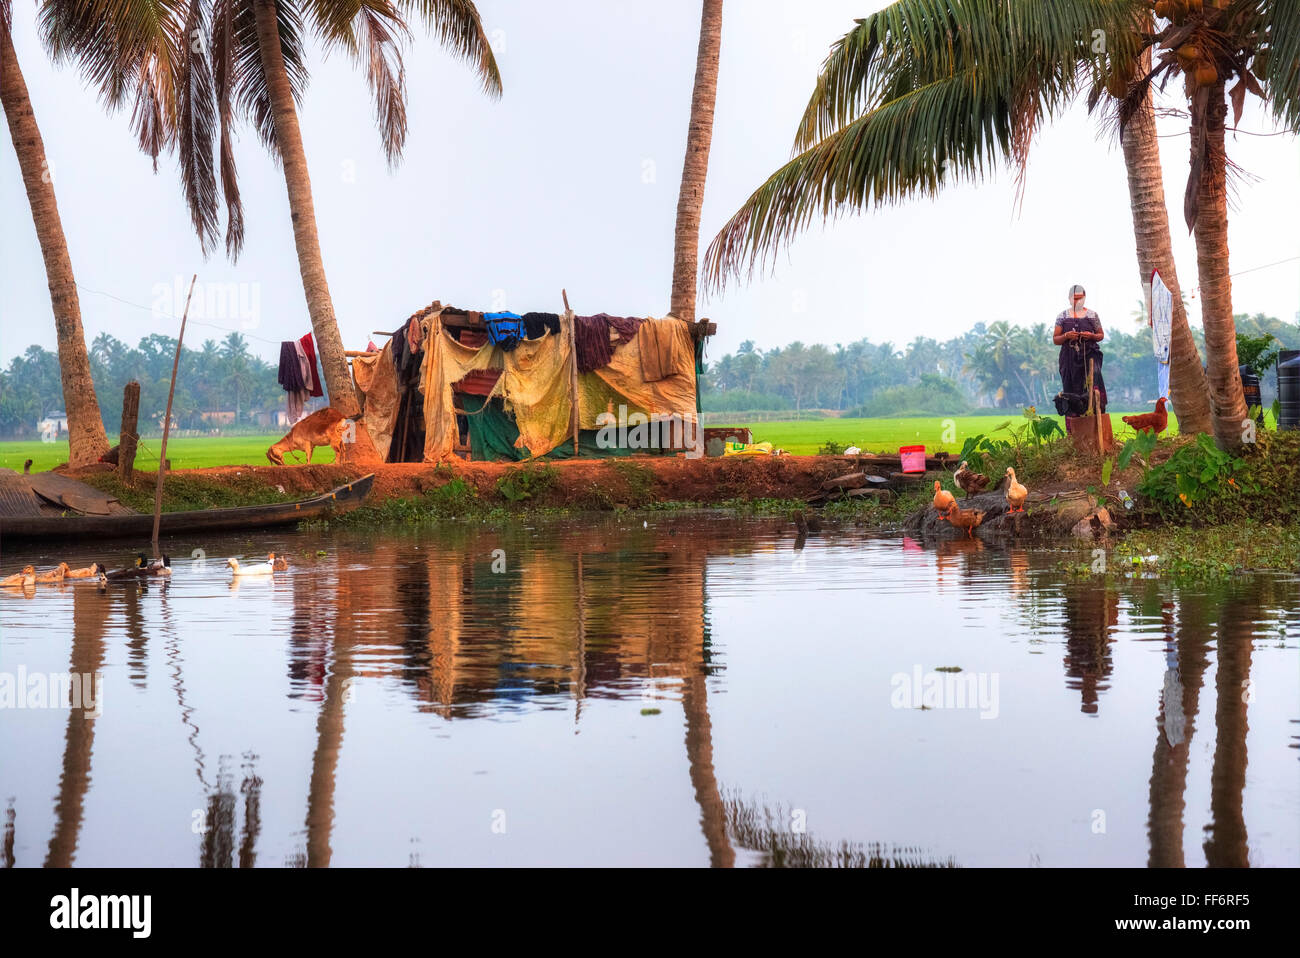 rural shack in Alappuzha, Backwaters, Kerala, South India, Asia - Stock Image